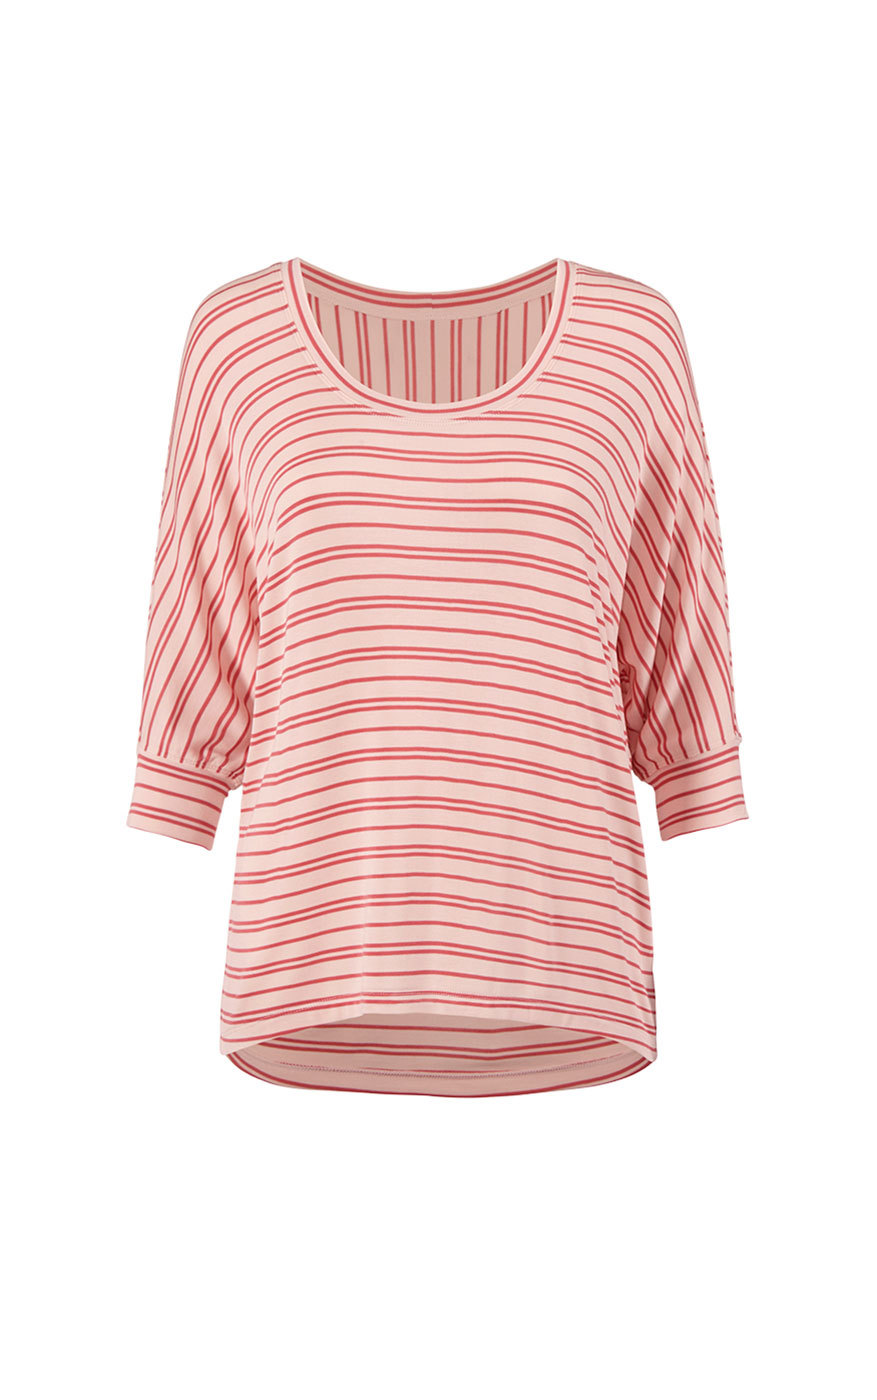 cabi's Tickled Tee